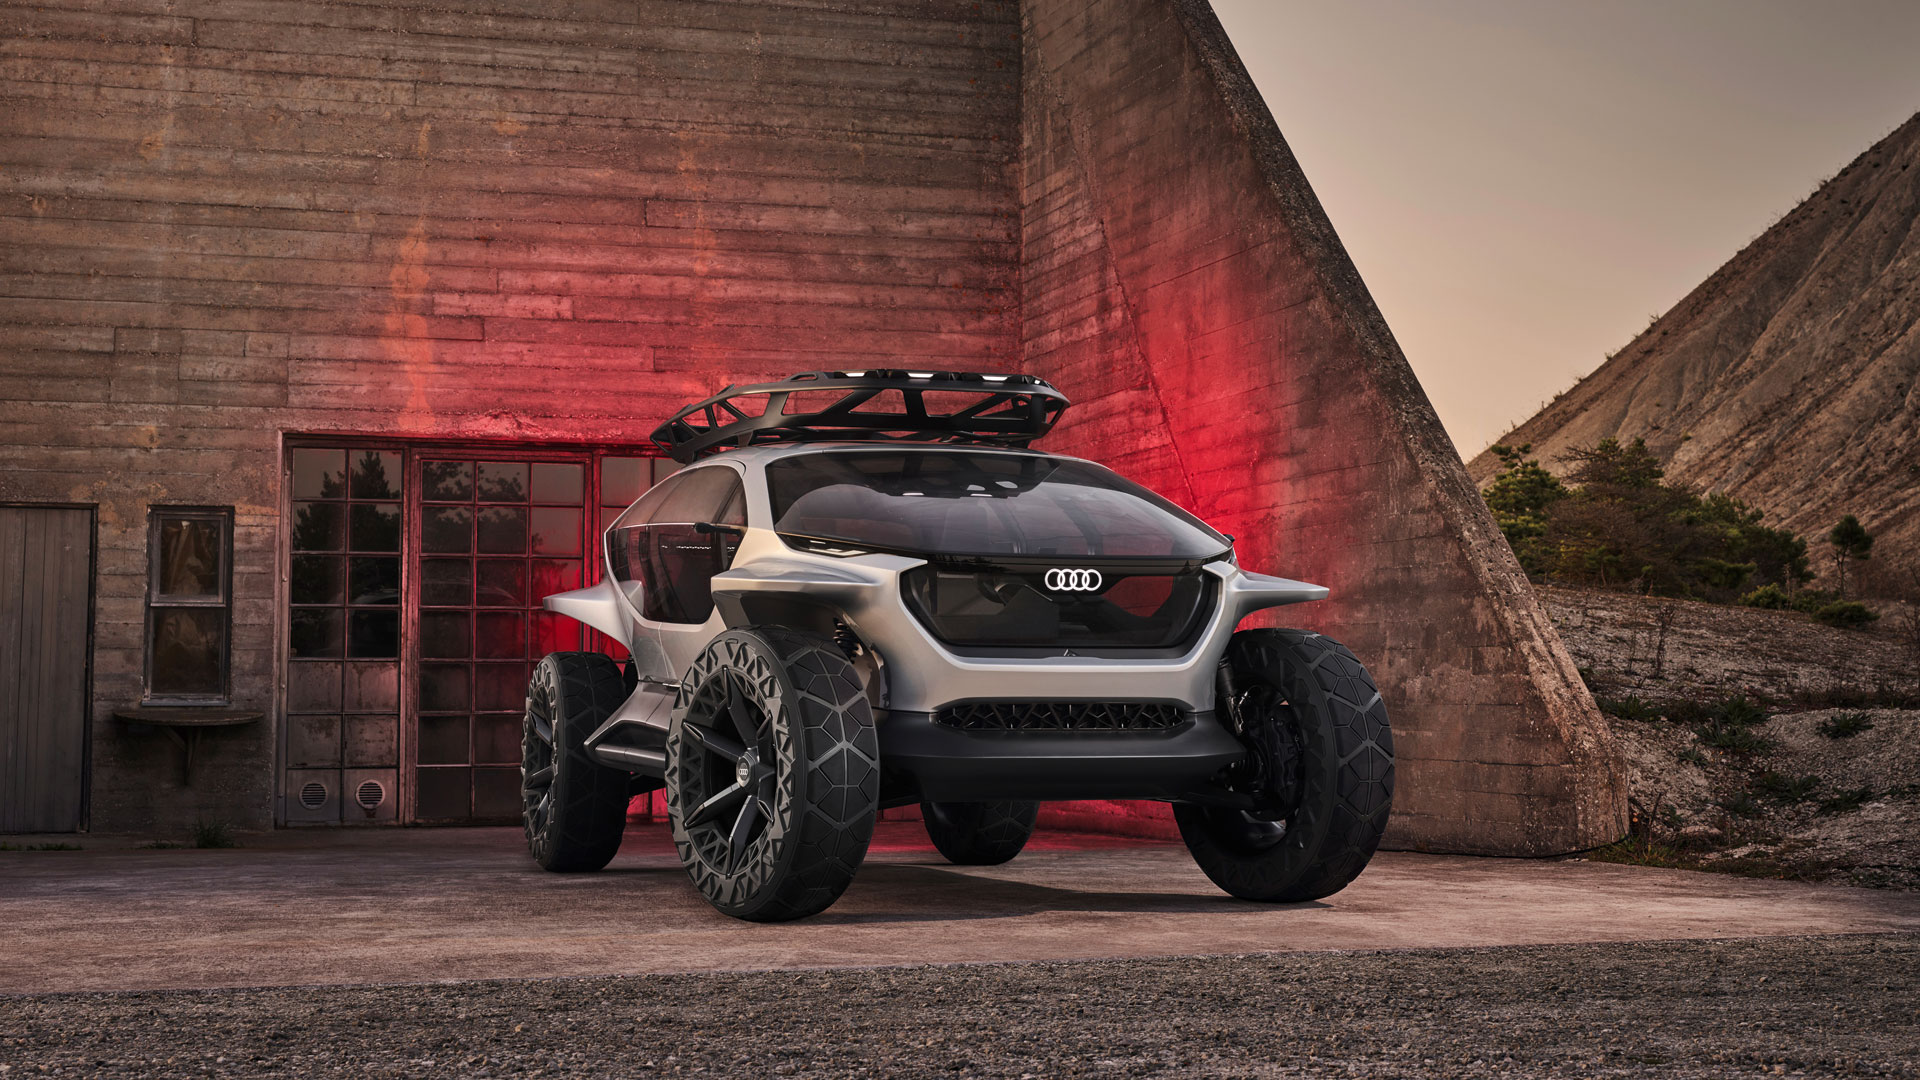 The Audi Aitrail Audi Concept Car 2019 And The Great